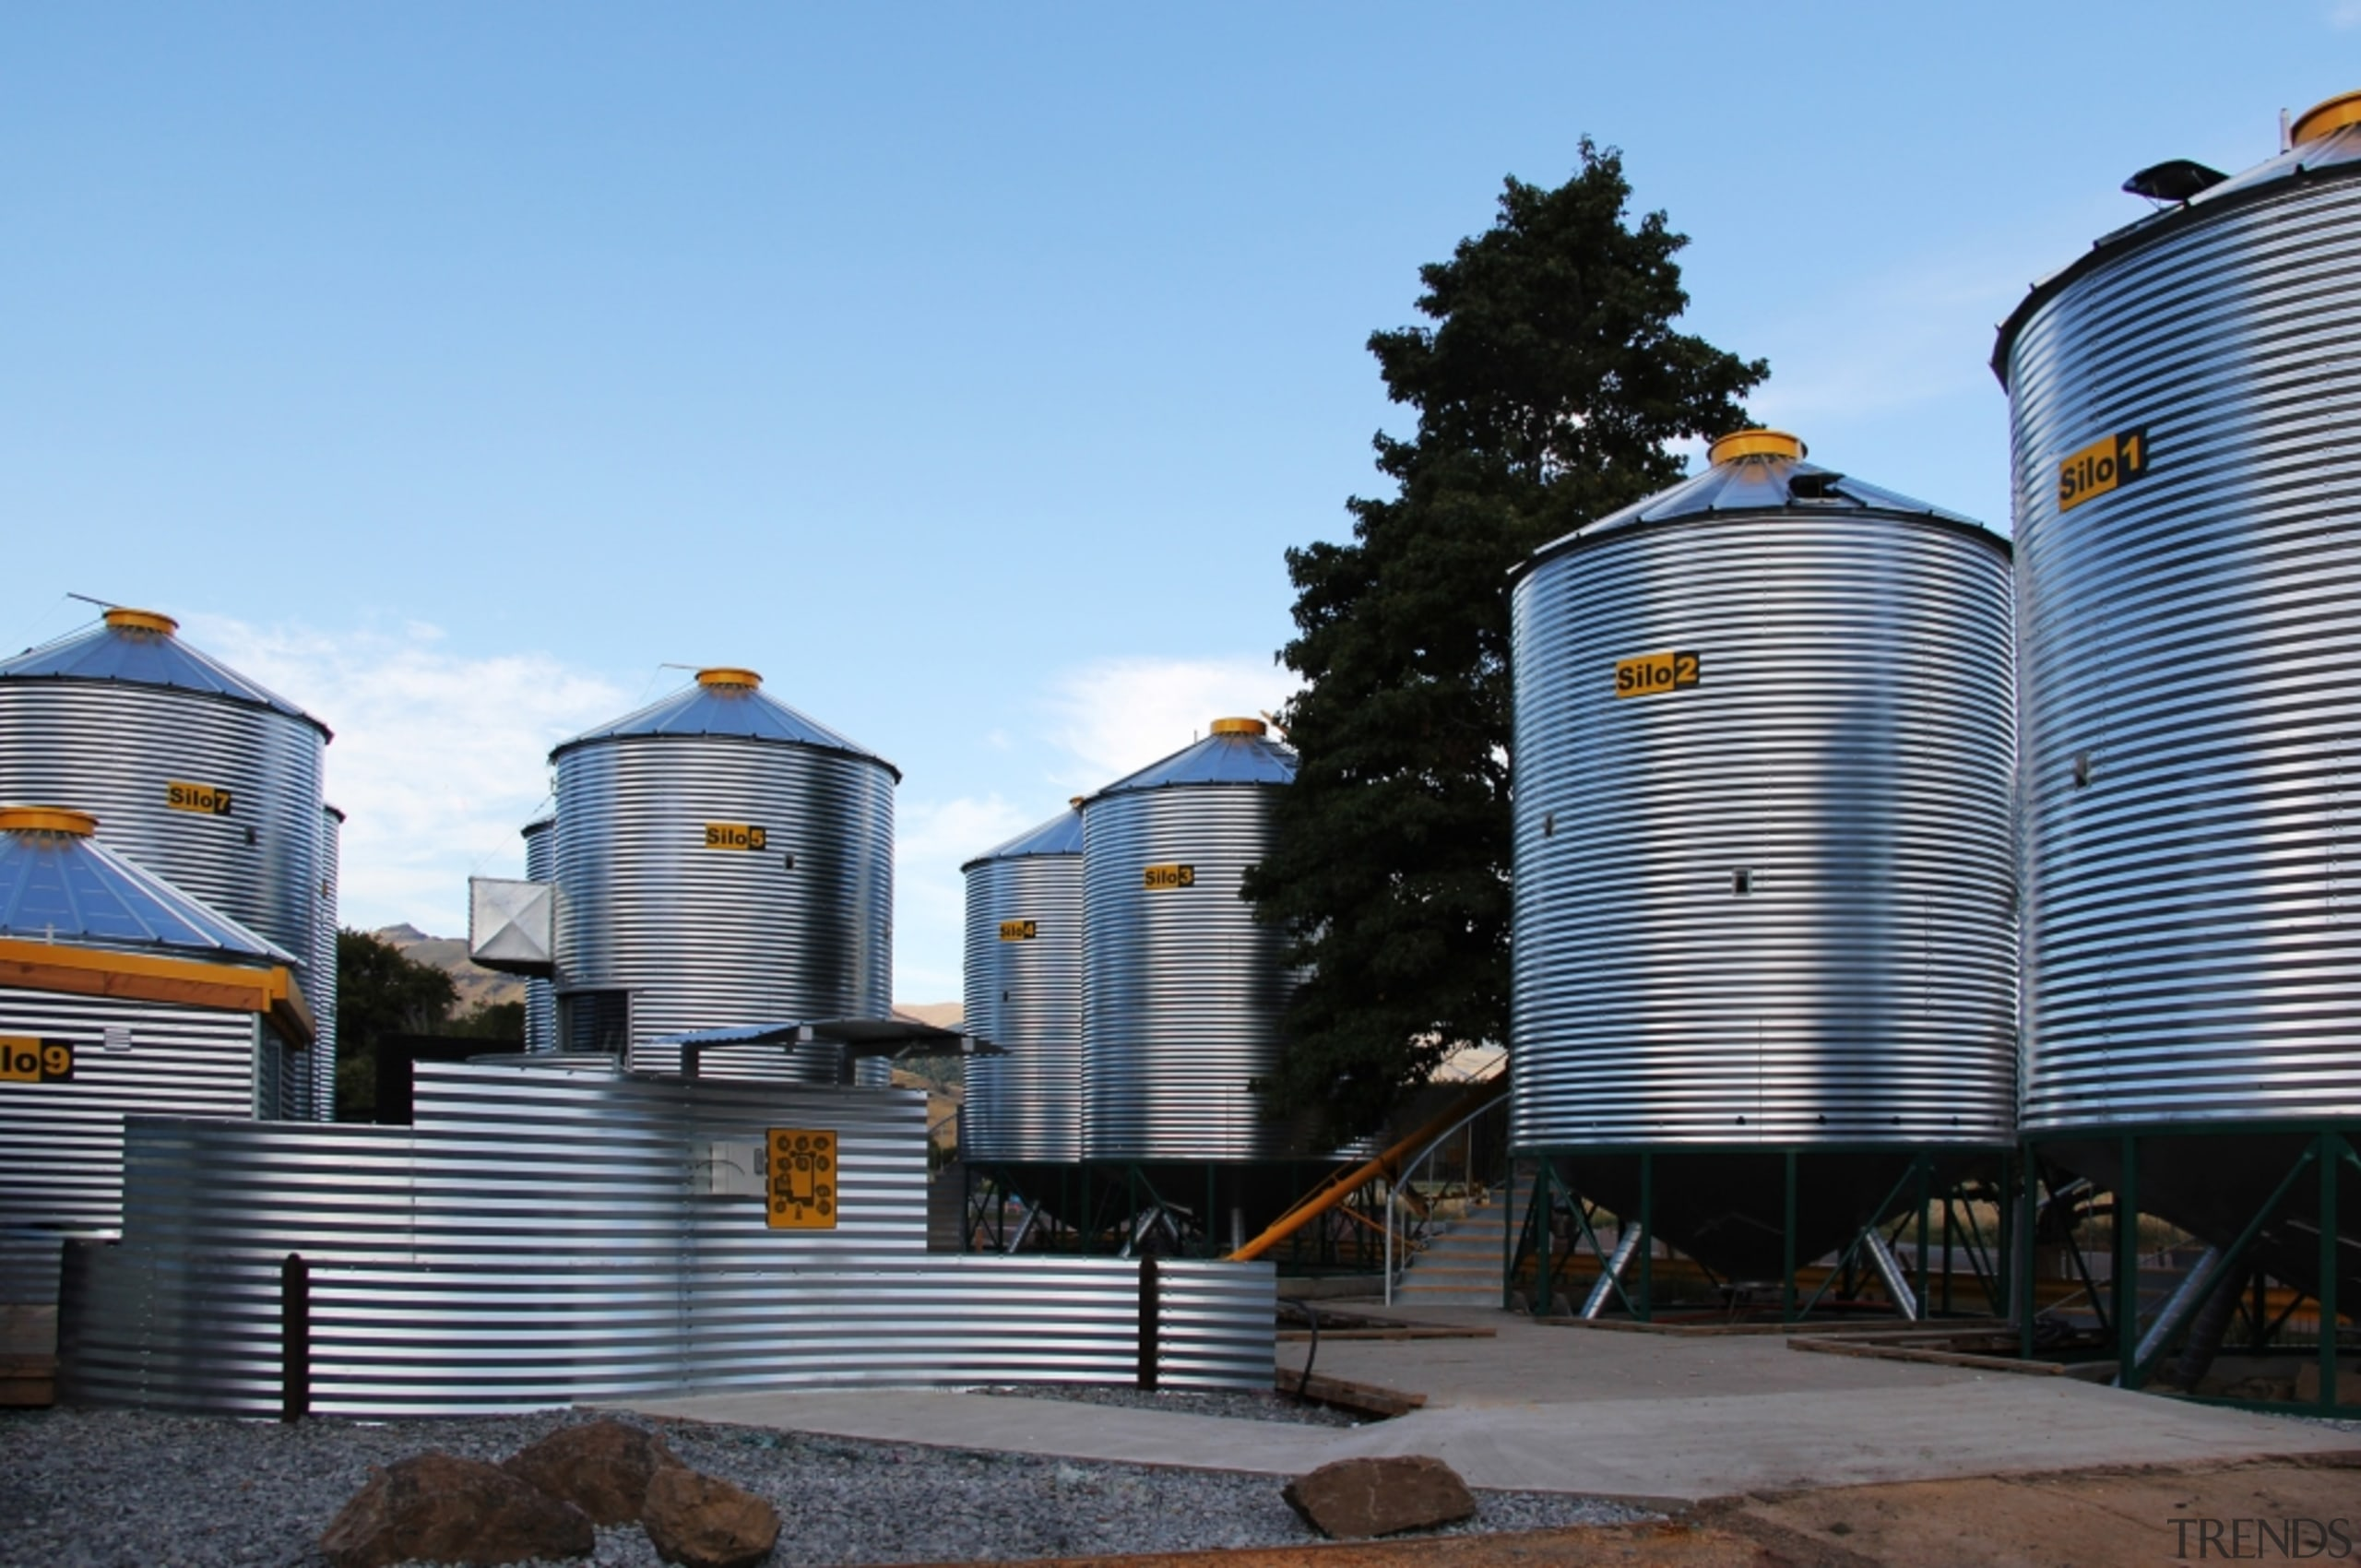 Silostay, Banks Peninsula, New Zealand - architecture   architecture, building, city, real estate, roof, silo, sky, storage tank, water, water tank, teal, black